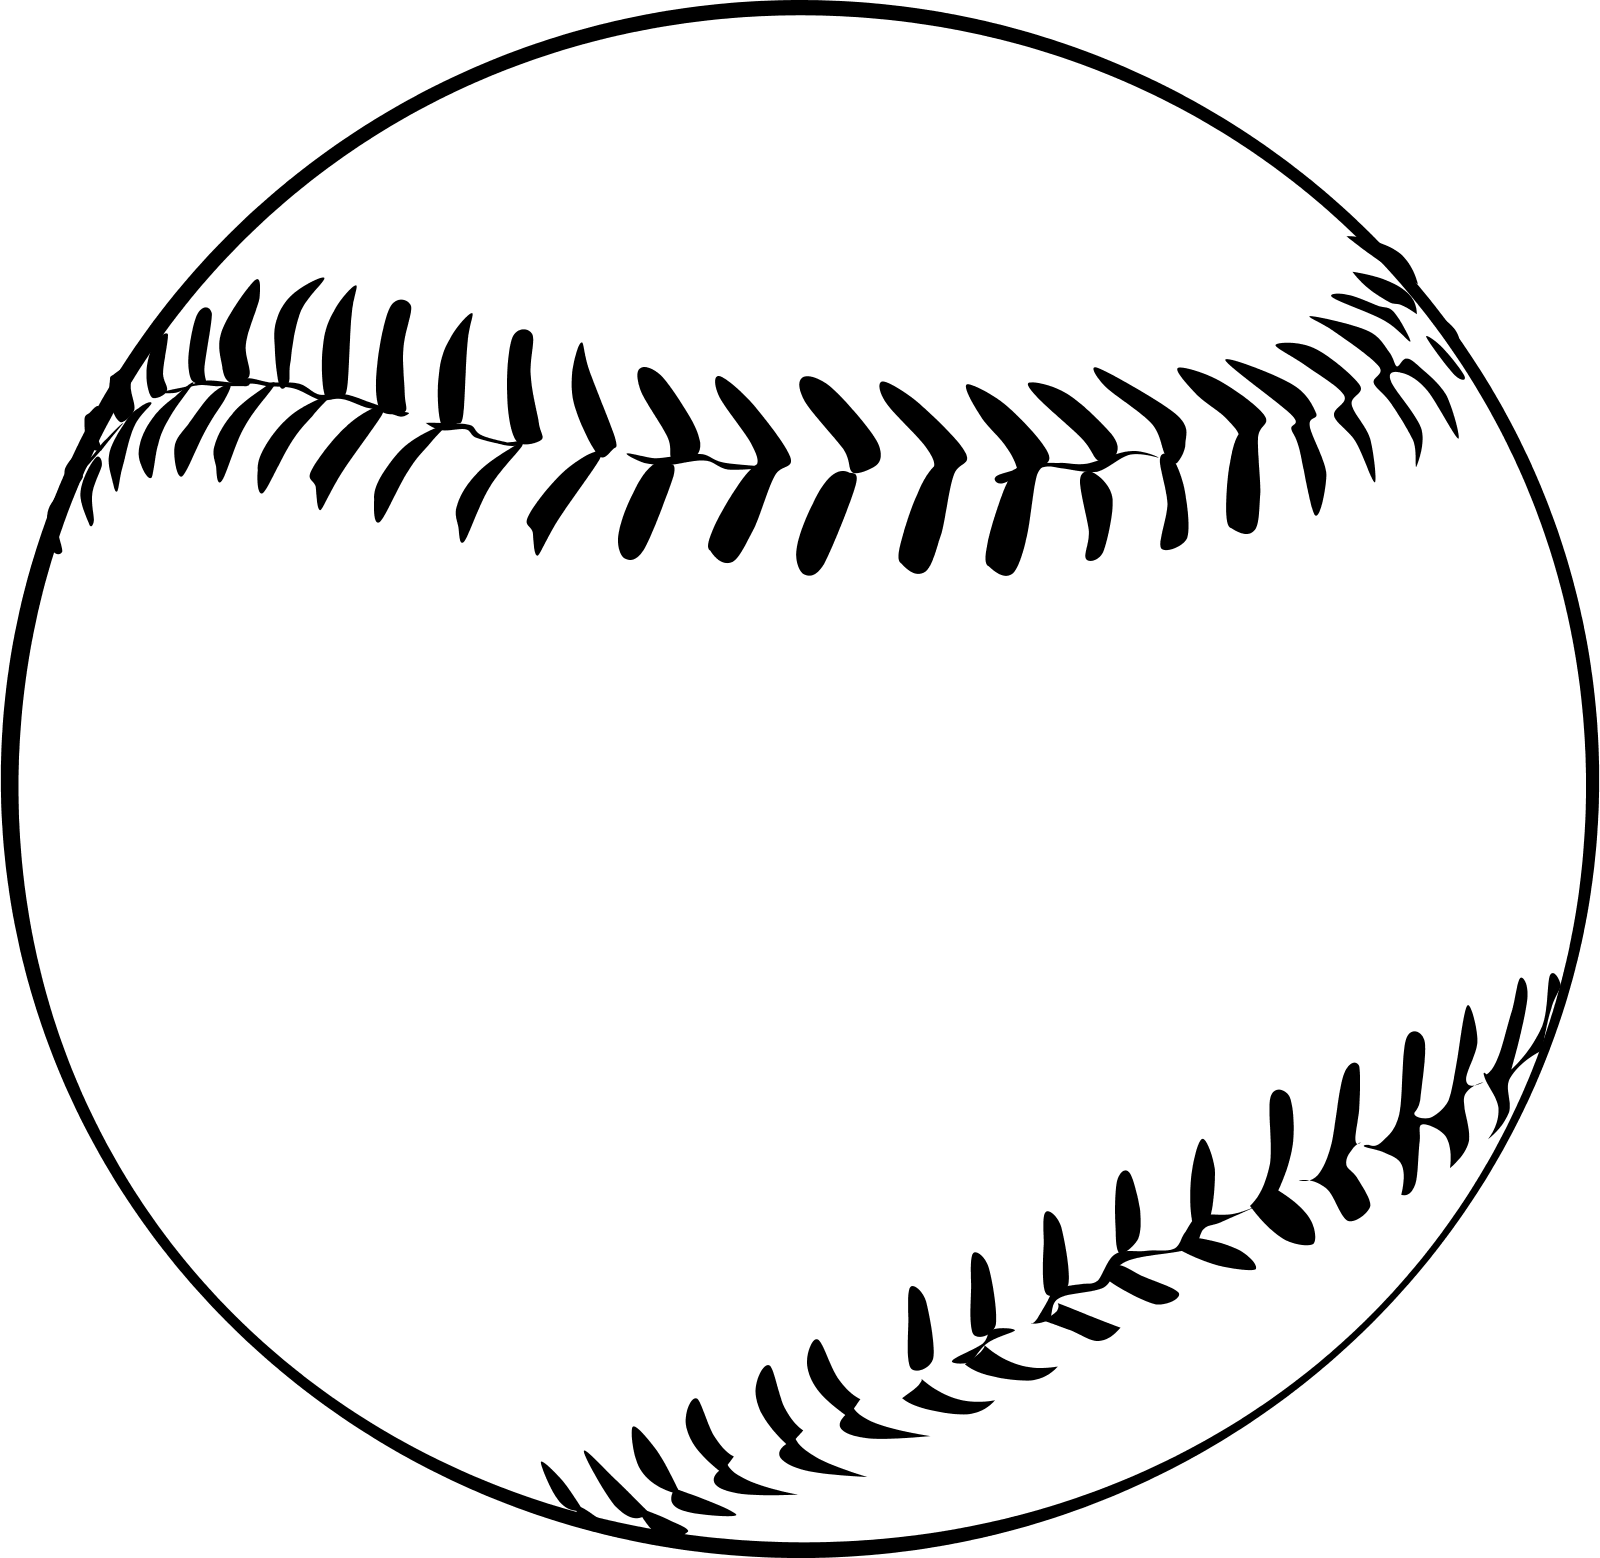 Softball clipart bow. Baseball template acur lunamedia